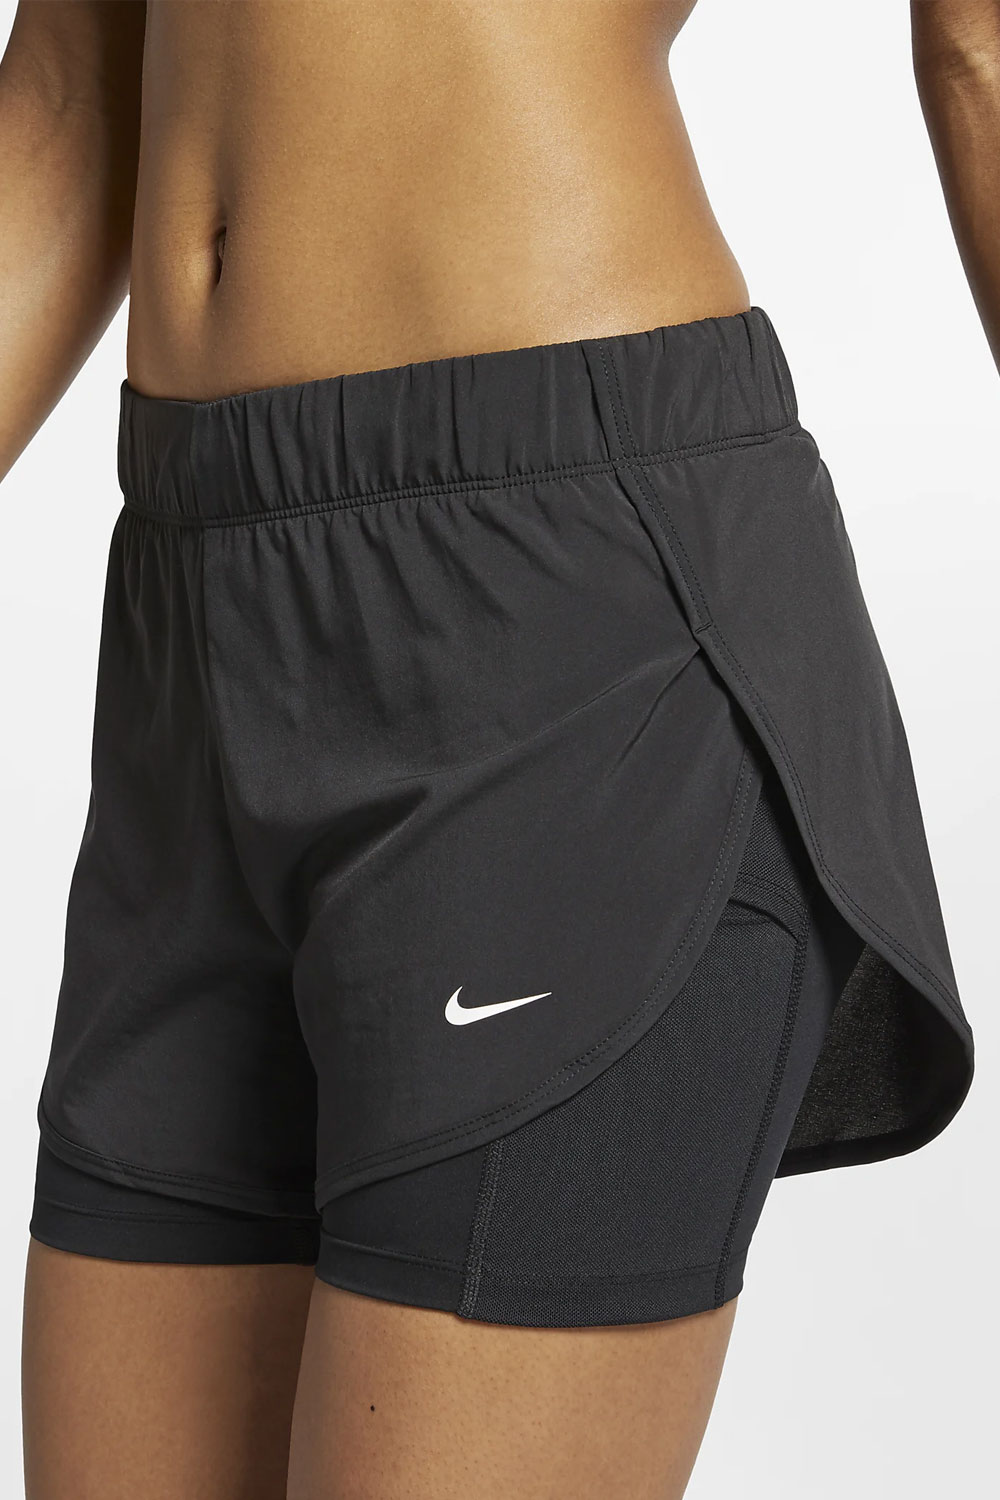 Nike Womens Flex 2in1 Short Woven (w)